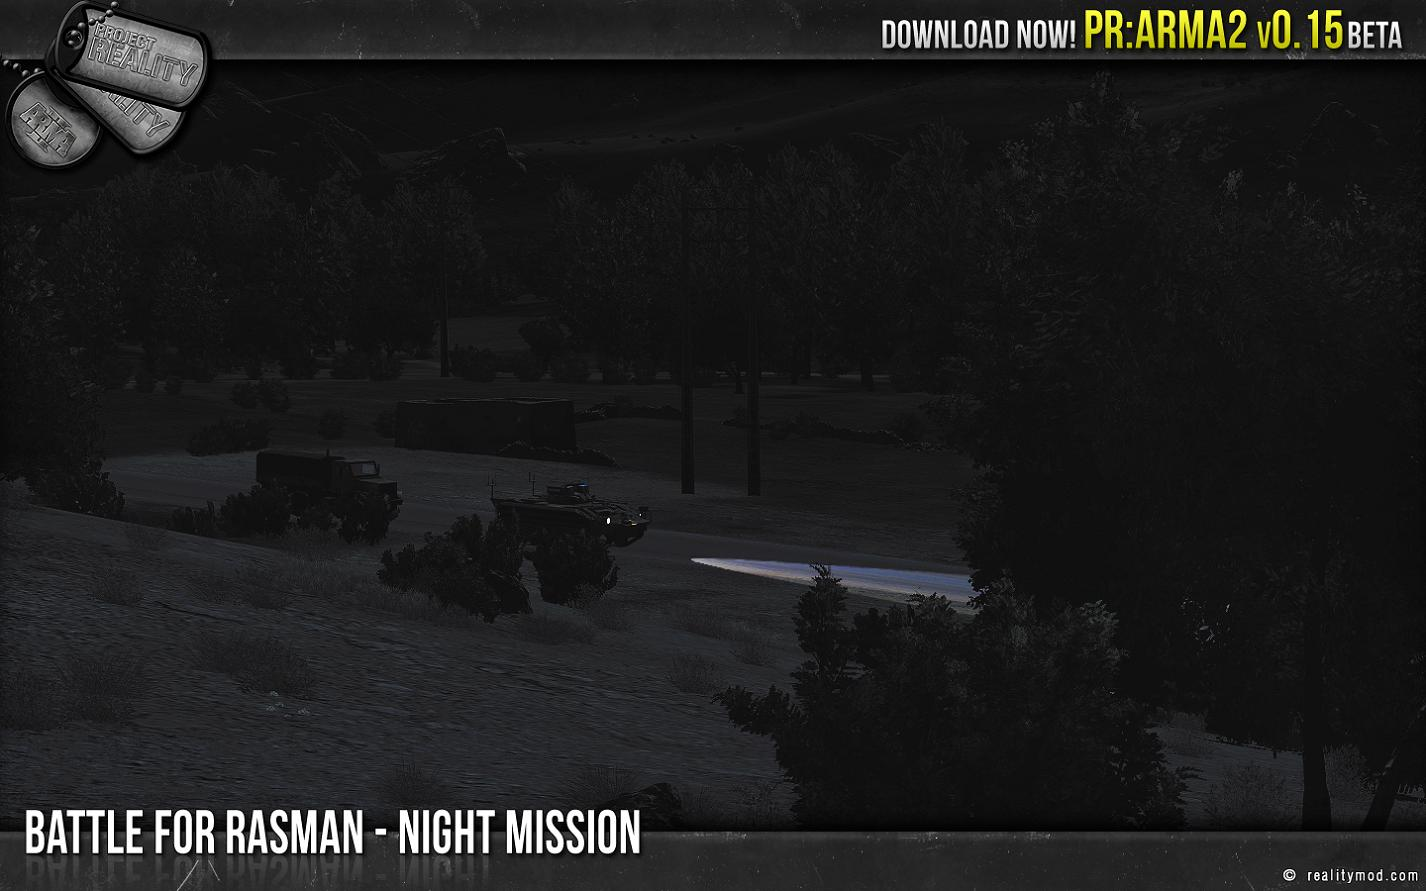 battle_for_rasman_night_mission.jpg